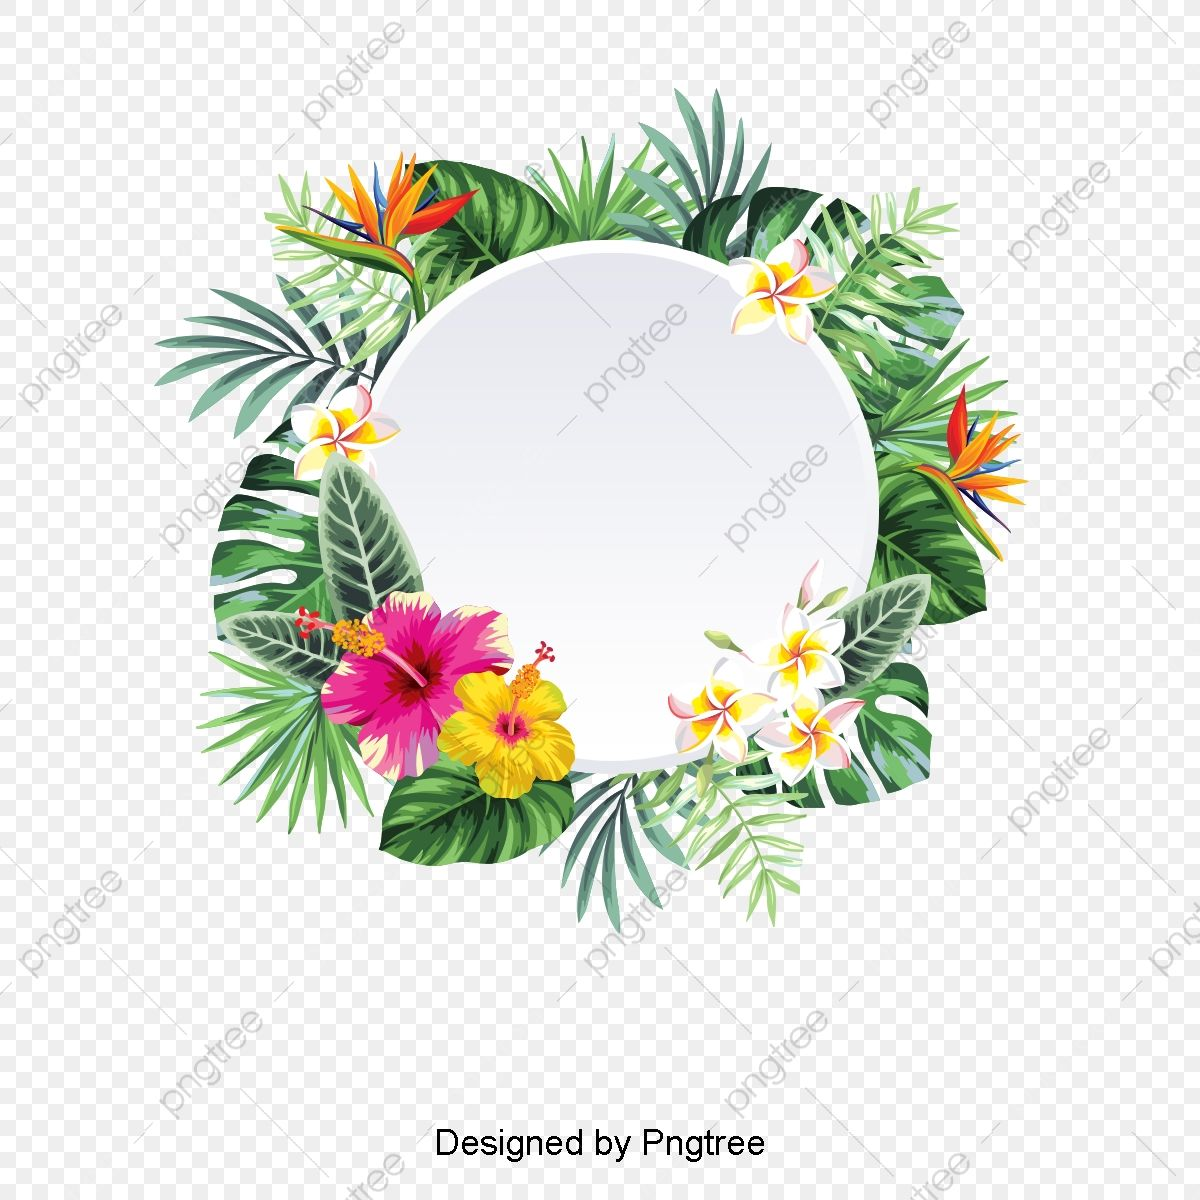 Vector Wreath Element Tropical Flower Leaves Trim Tabs Png Transparent Clipart Image And Psd File For Free Download Tropical Wreath Tropical Flowers Flower Backgrounds